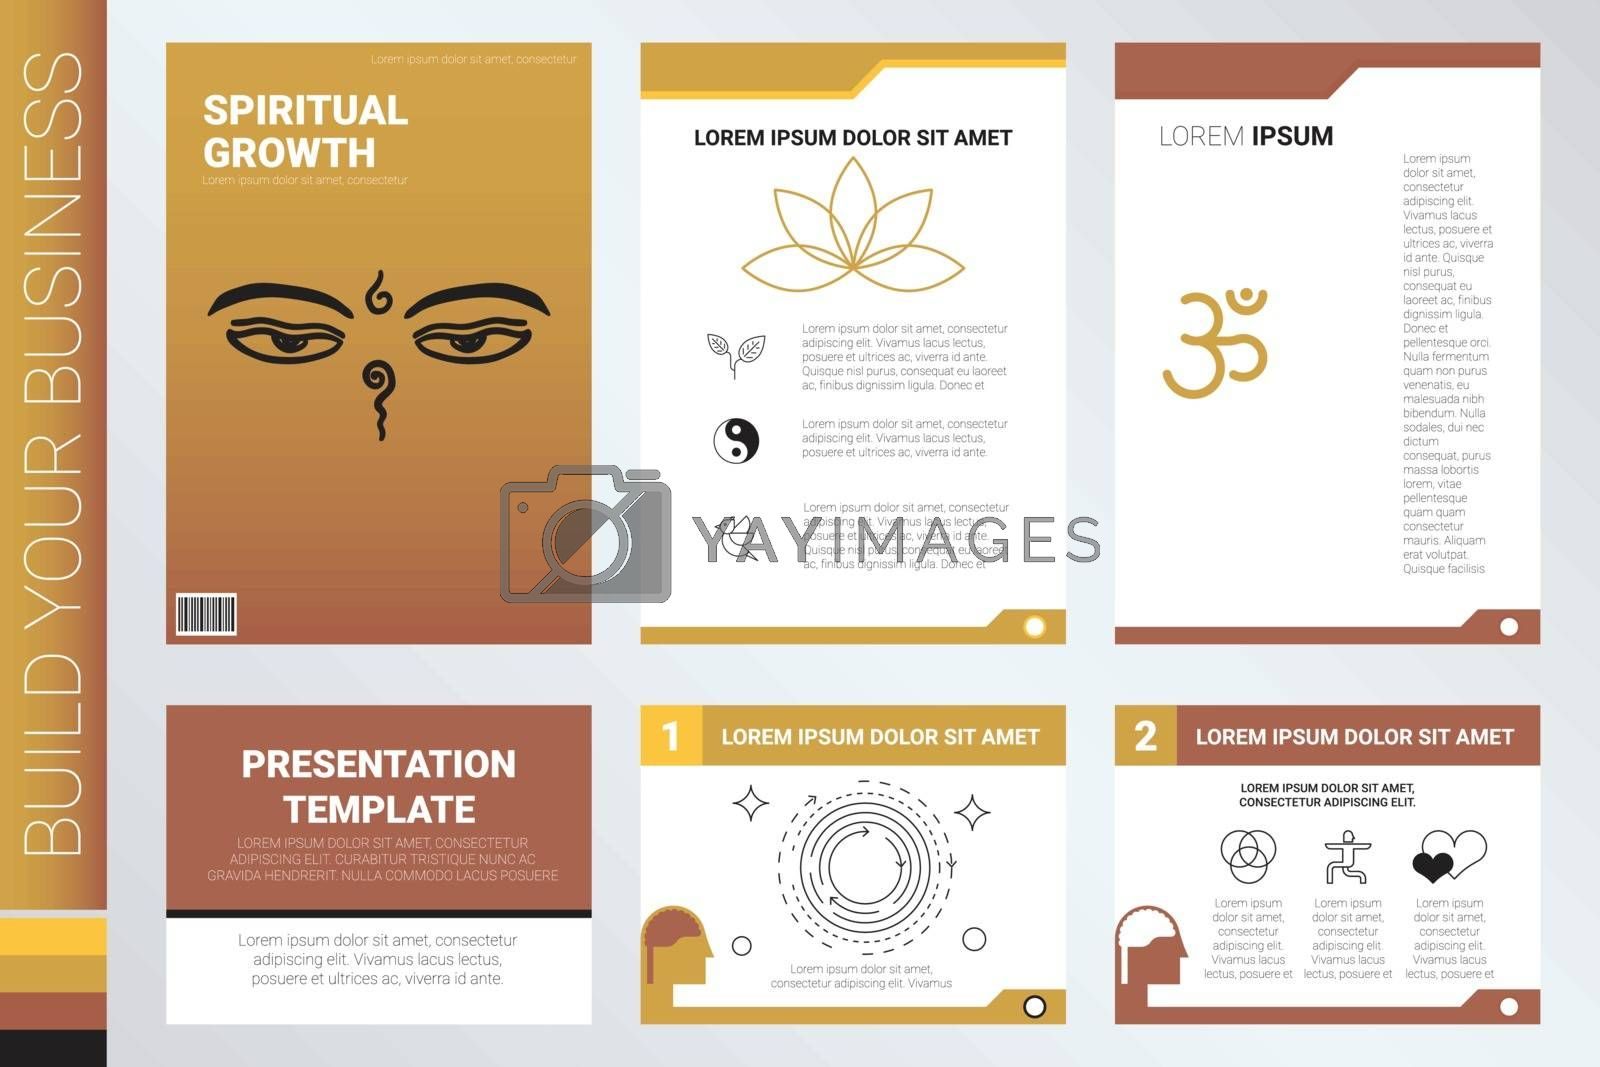 Book cover and presentation template with flat design elements, ideal for company information or infographic annual report